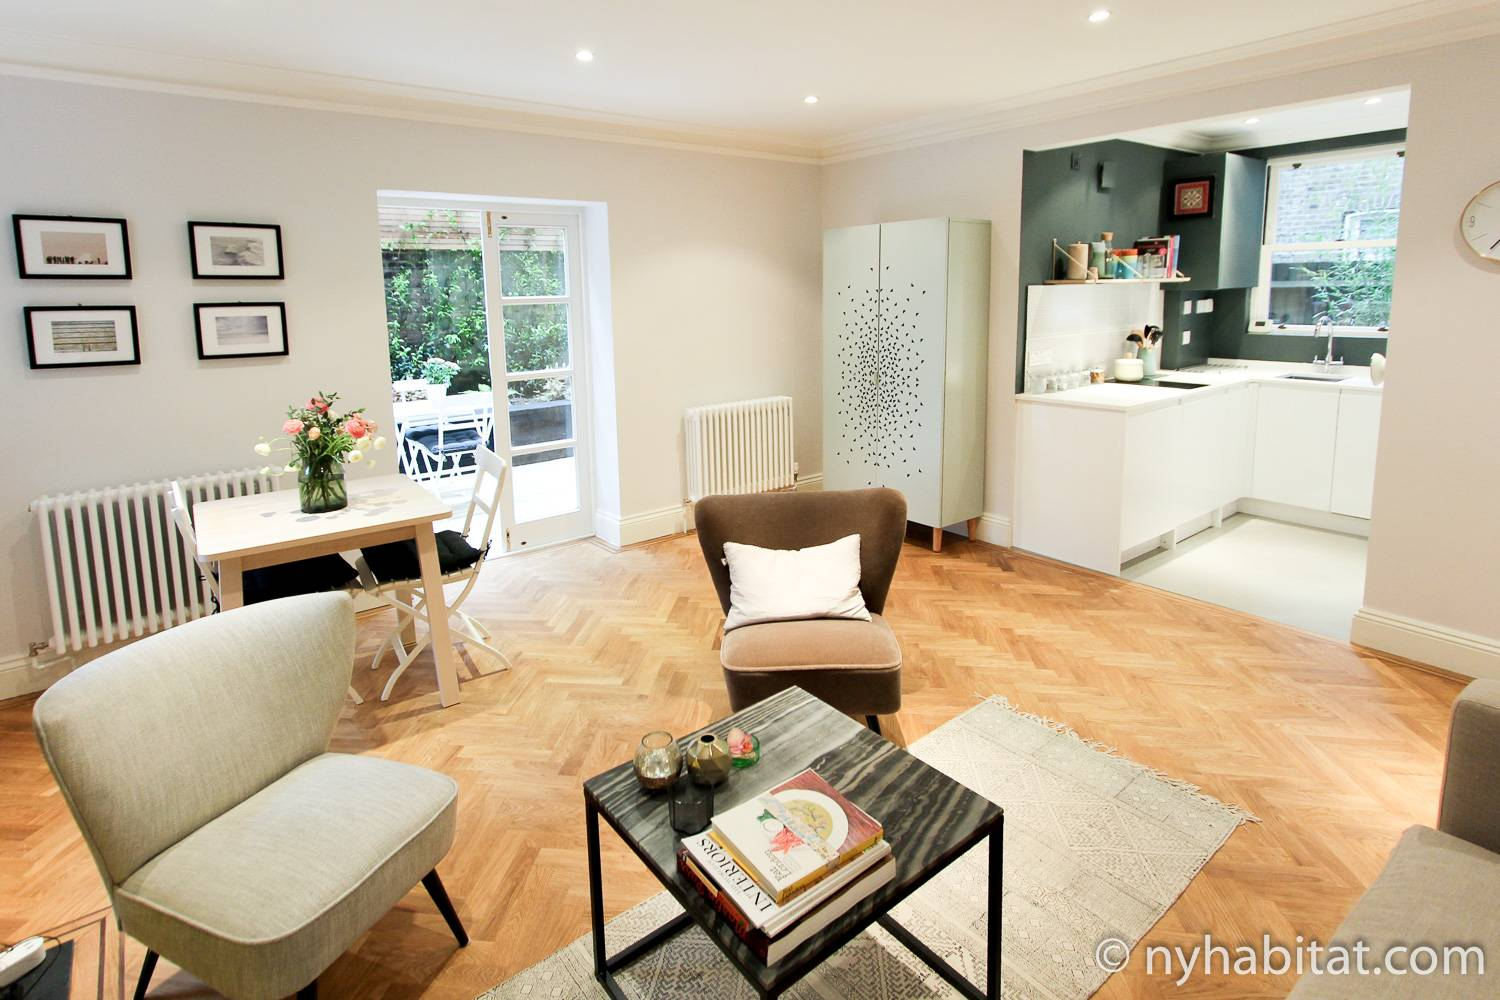 An image of rental apartment LN-1695 in Notting Hill with clean, fresh decor and simple embellishments.